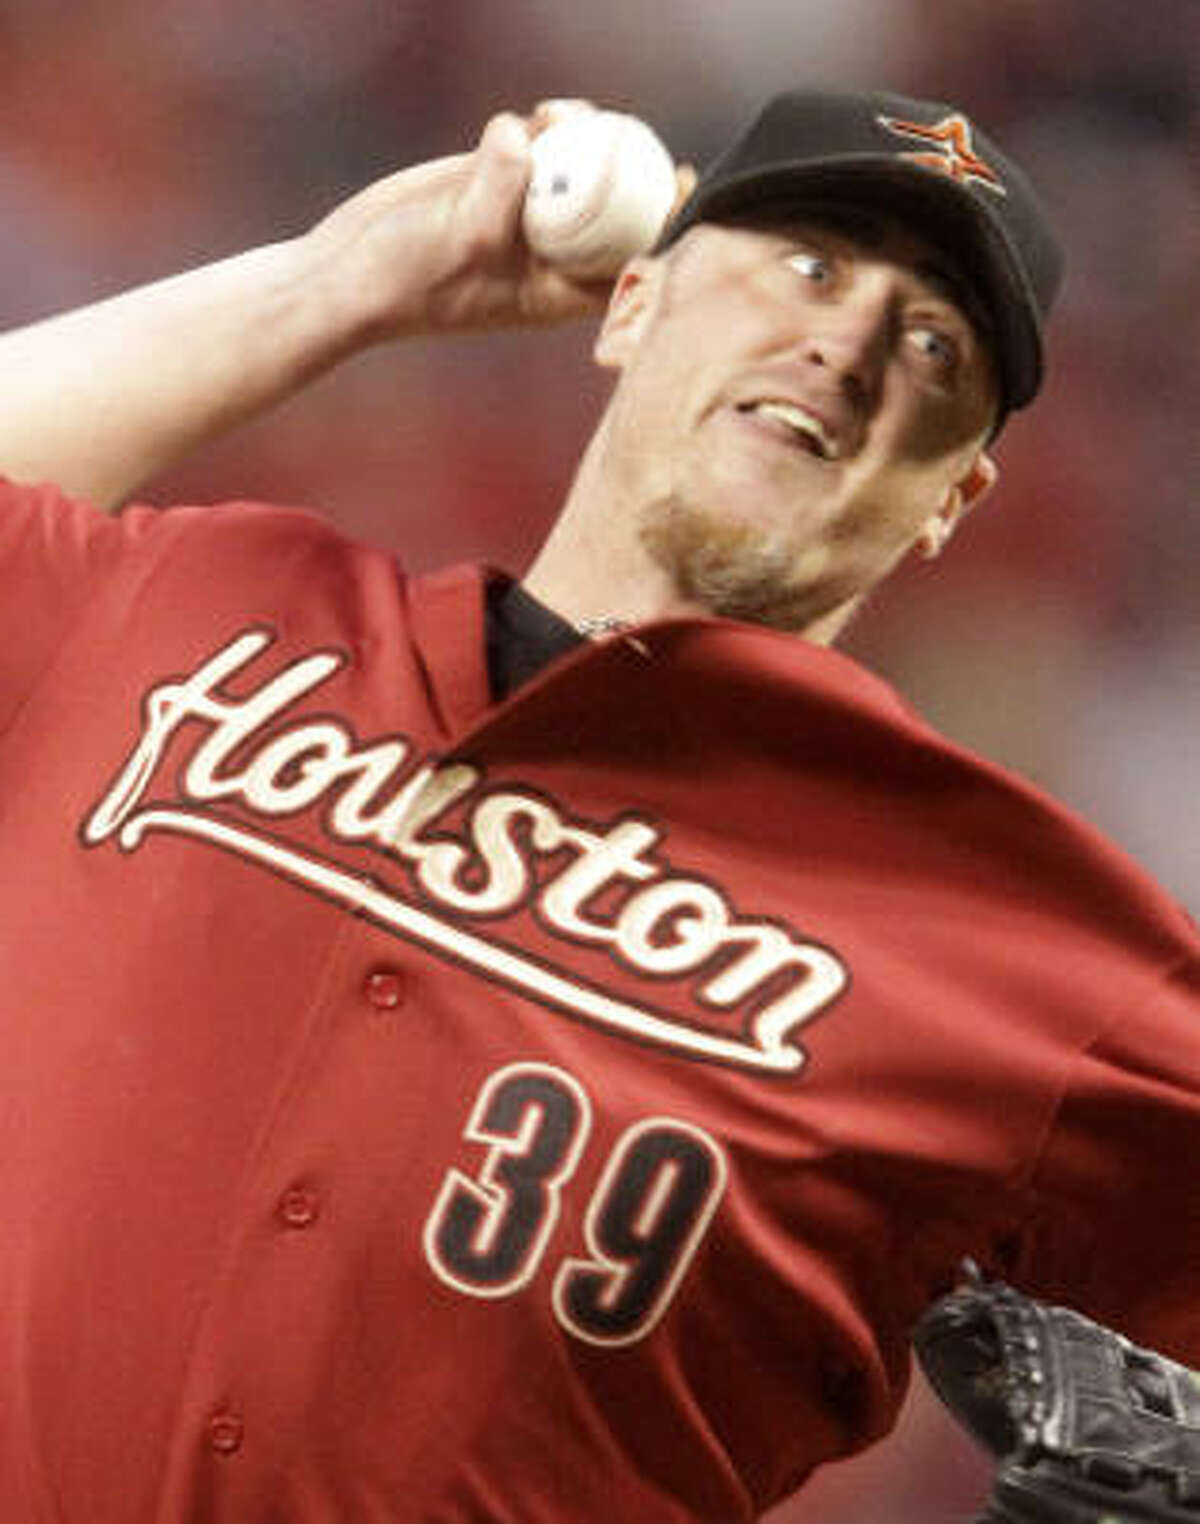 Astros starter Brett Myers was roughed up for eight runs in 5 2/3 innings, picking up the loss to finish the season 14-8. The loss snapped his 32-start streak of going six innings or more.